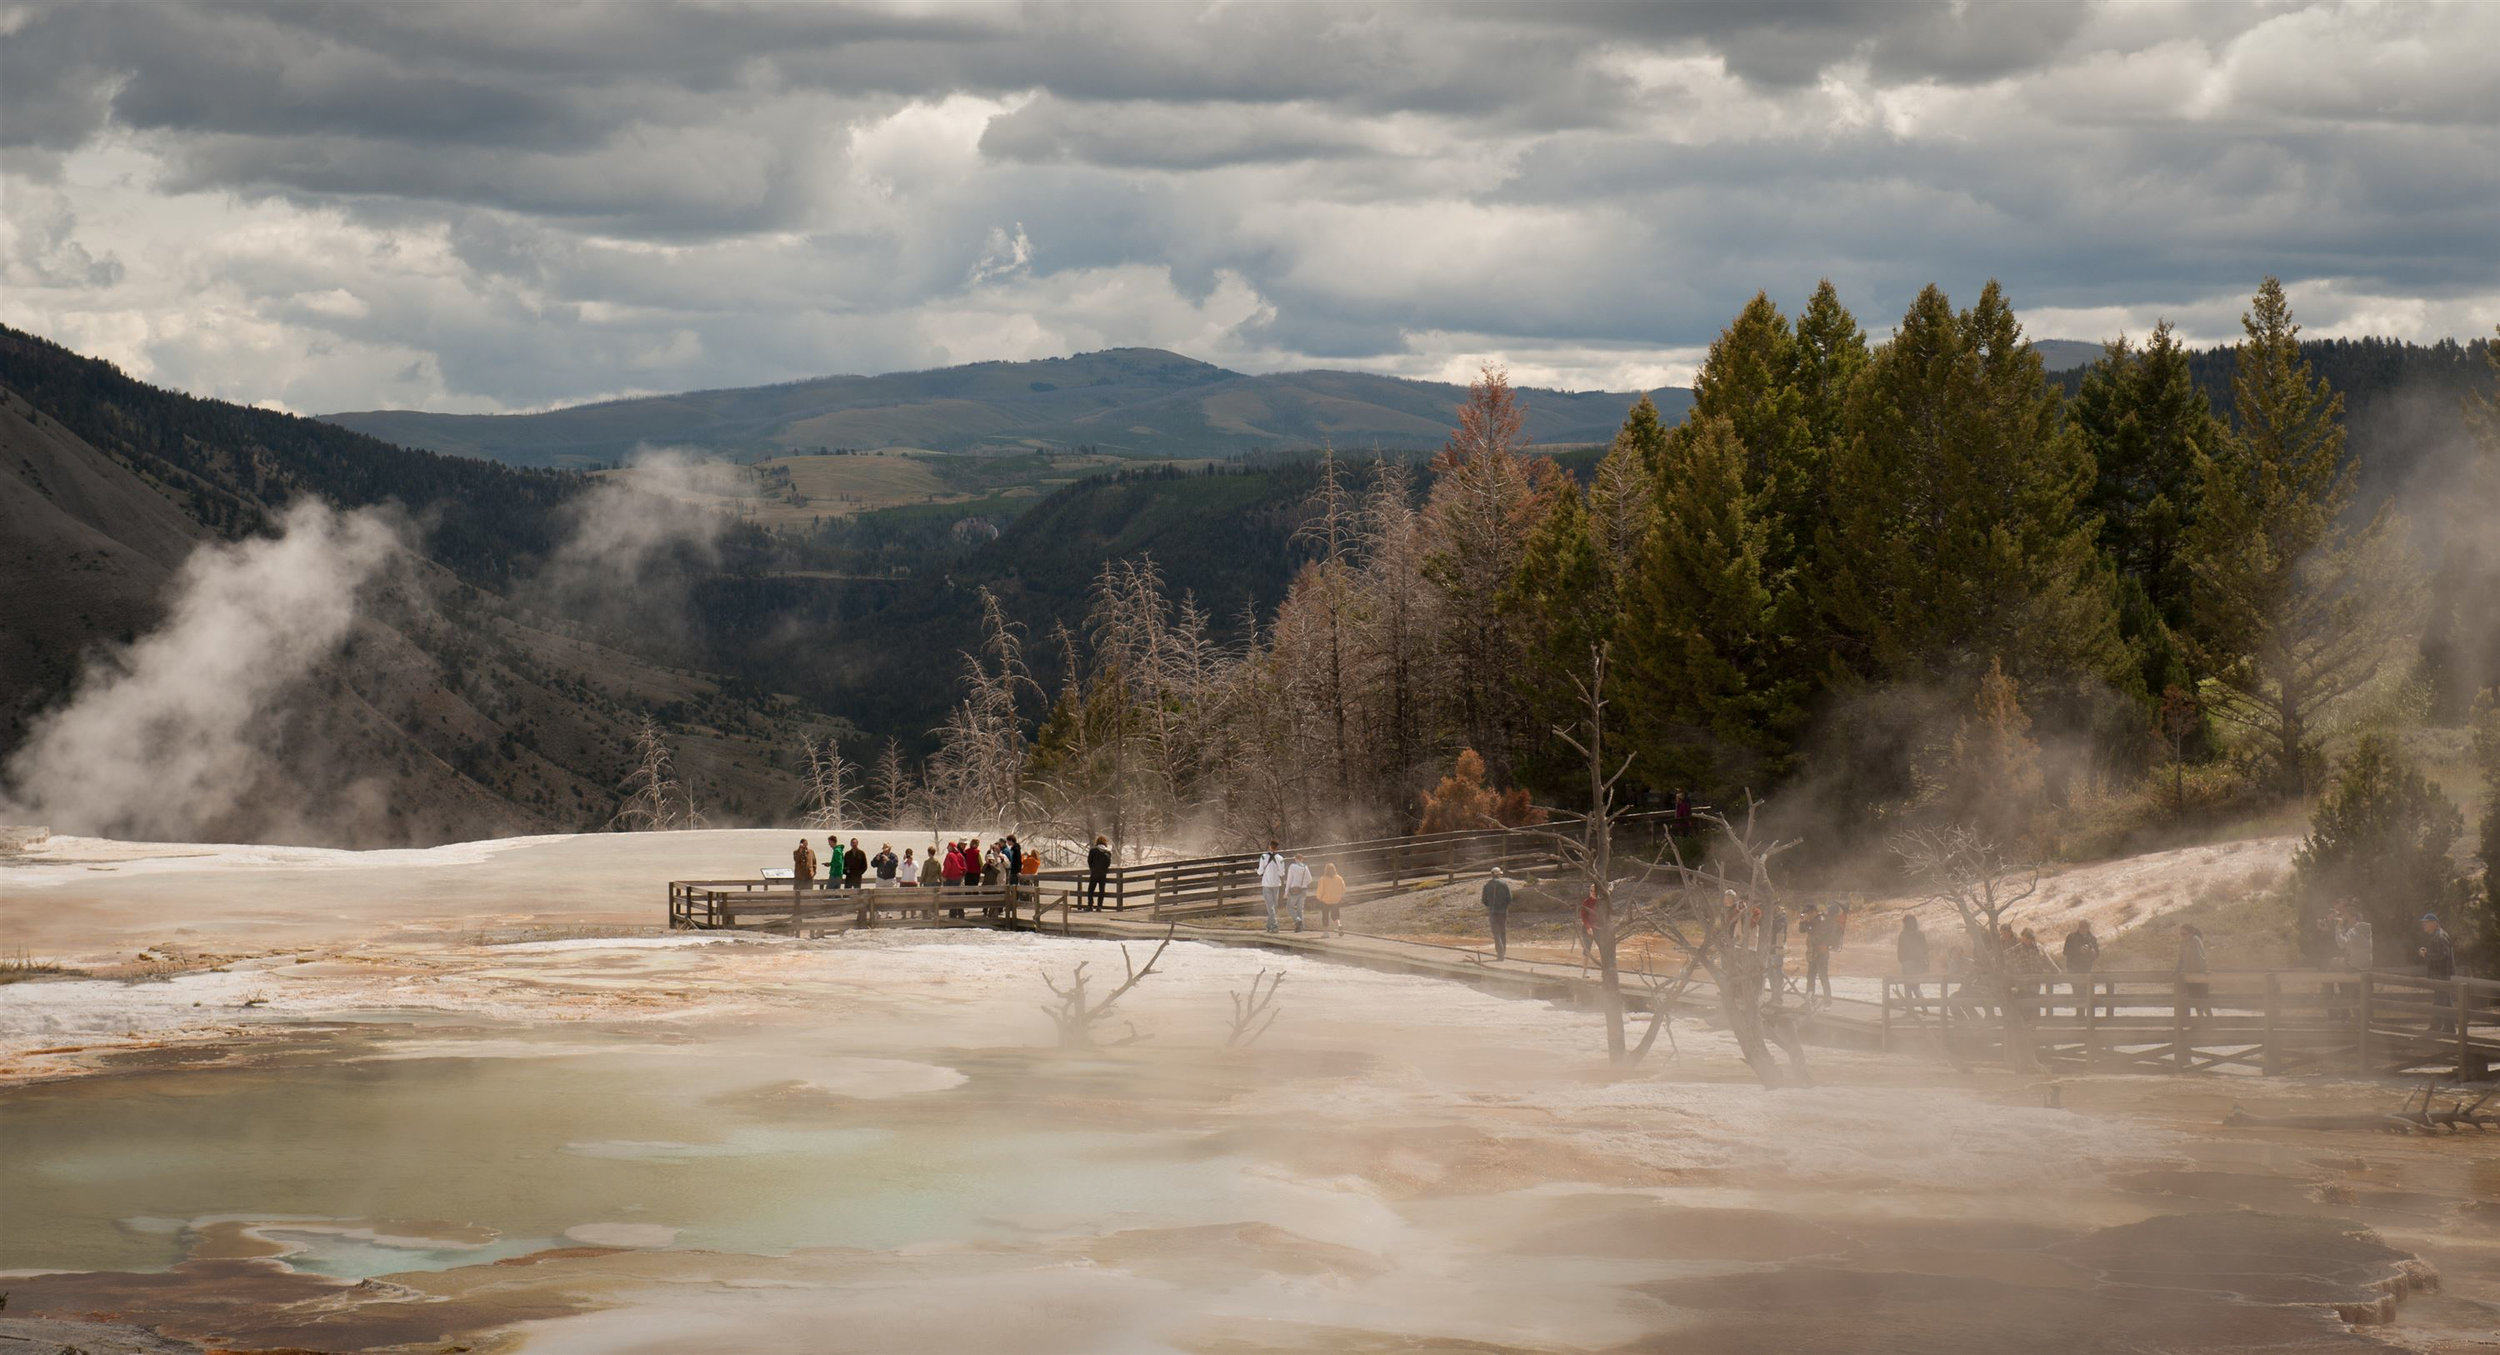 Yellowstone National Park has been the setting for many movies including Star Trek: The Motion Picture, Samsara, Heart of Glass, The Big Trail, and The Mountain Men.